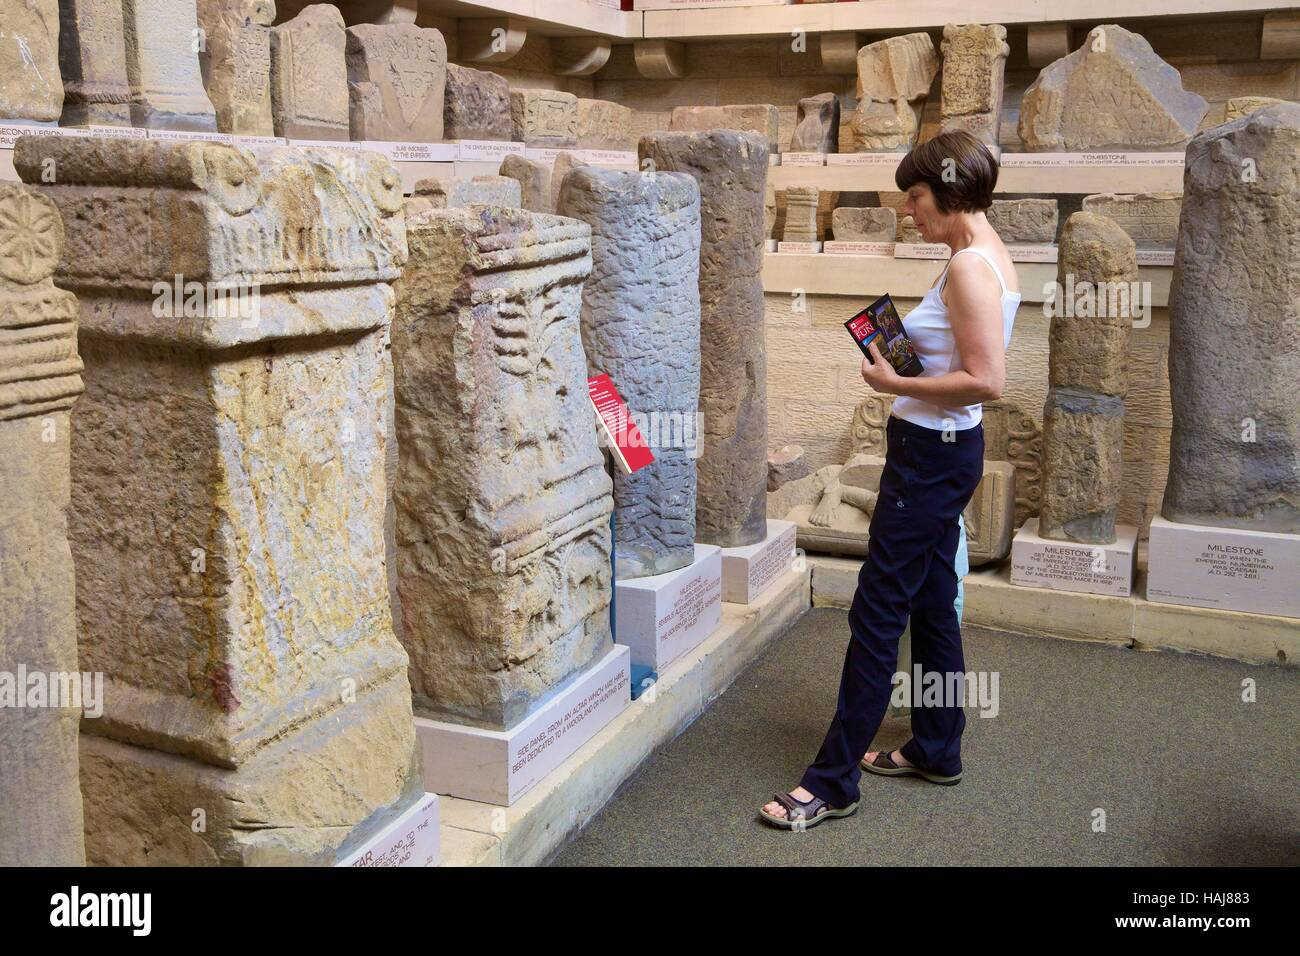 Woman tourist looking at artefacts. Chesters Roman Fort and Museum. Chollerford, Hexham, Northumberland, England, - Stock Image